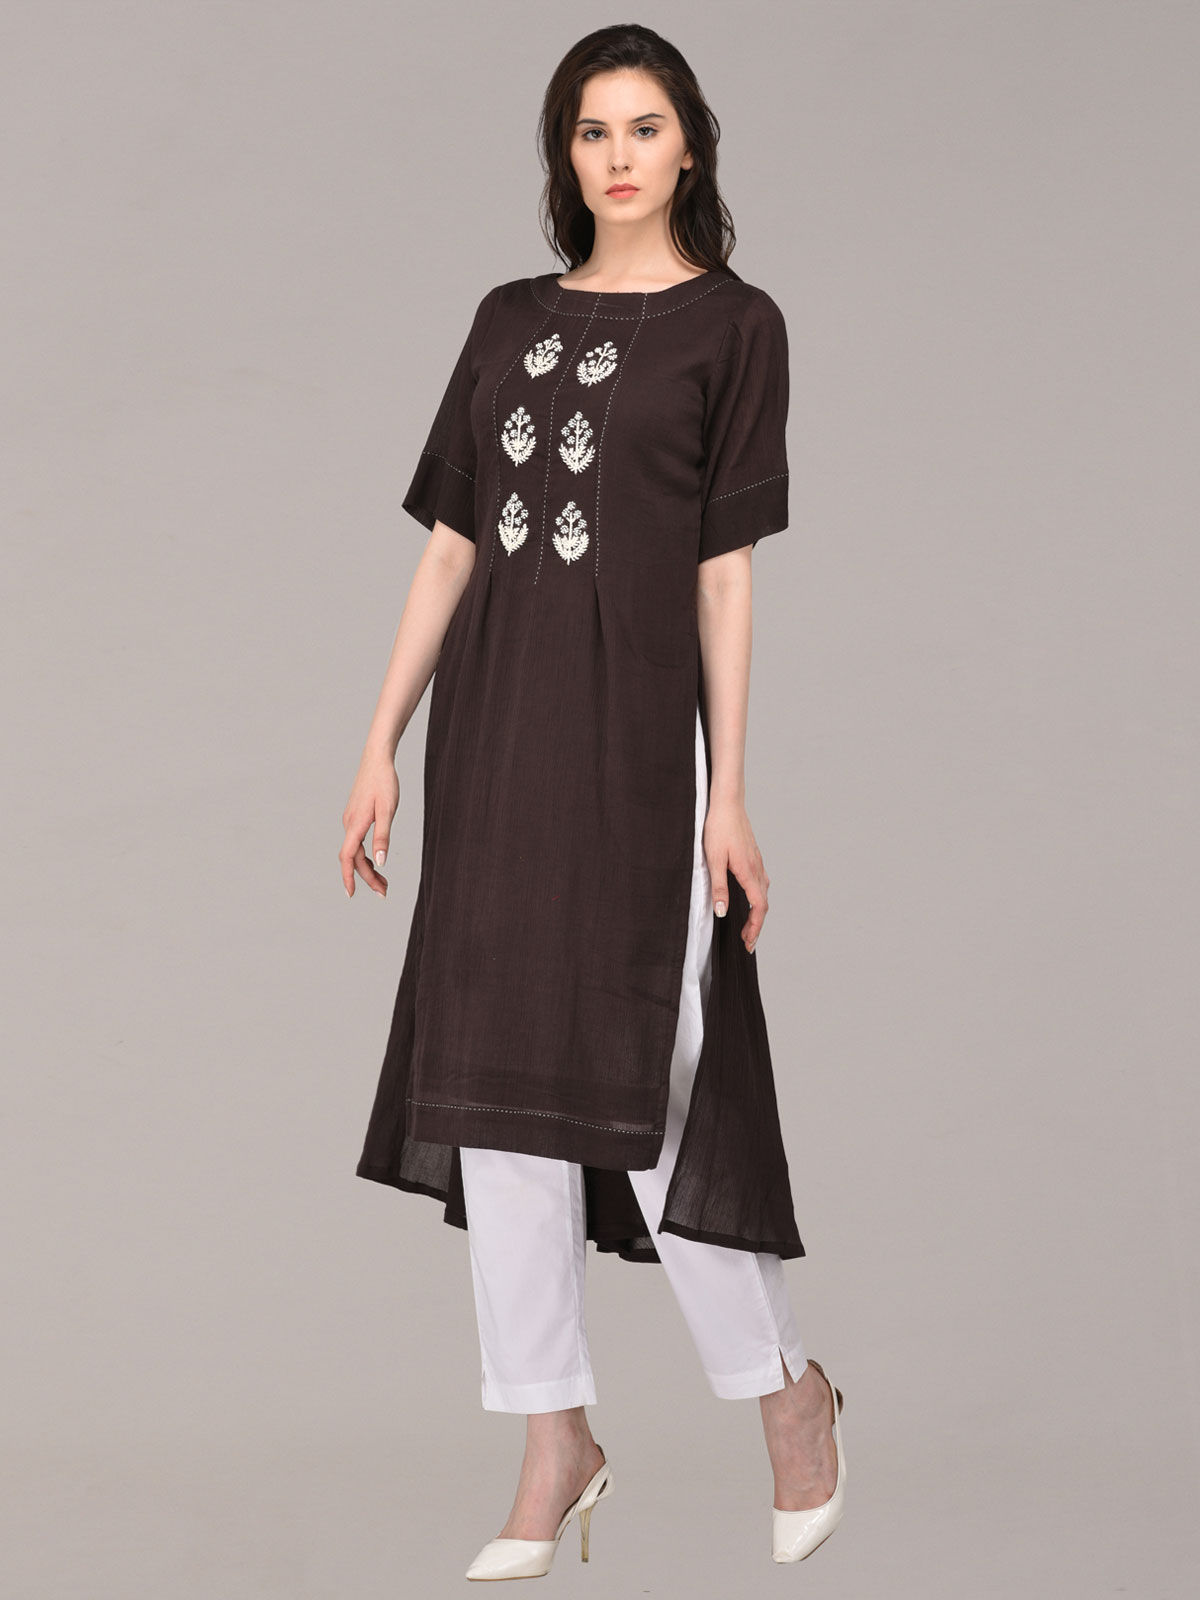 Panachee hand embroidered black pure cotton kurti